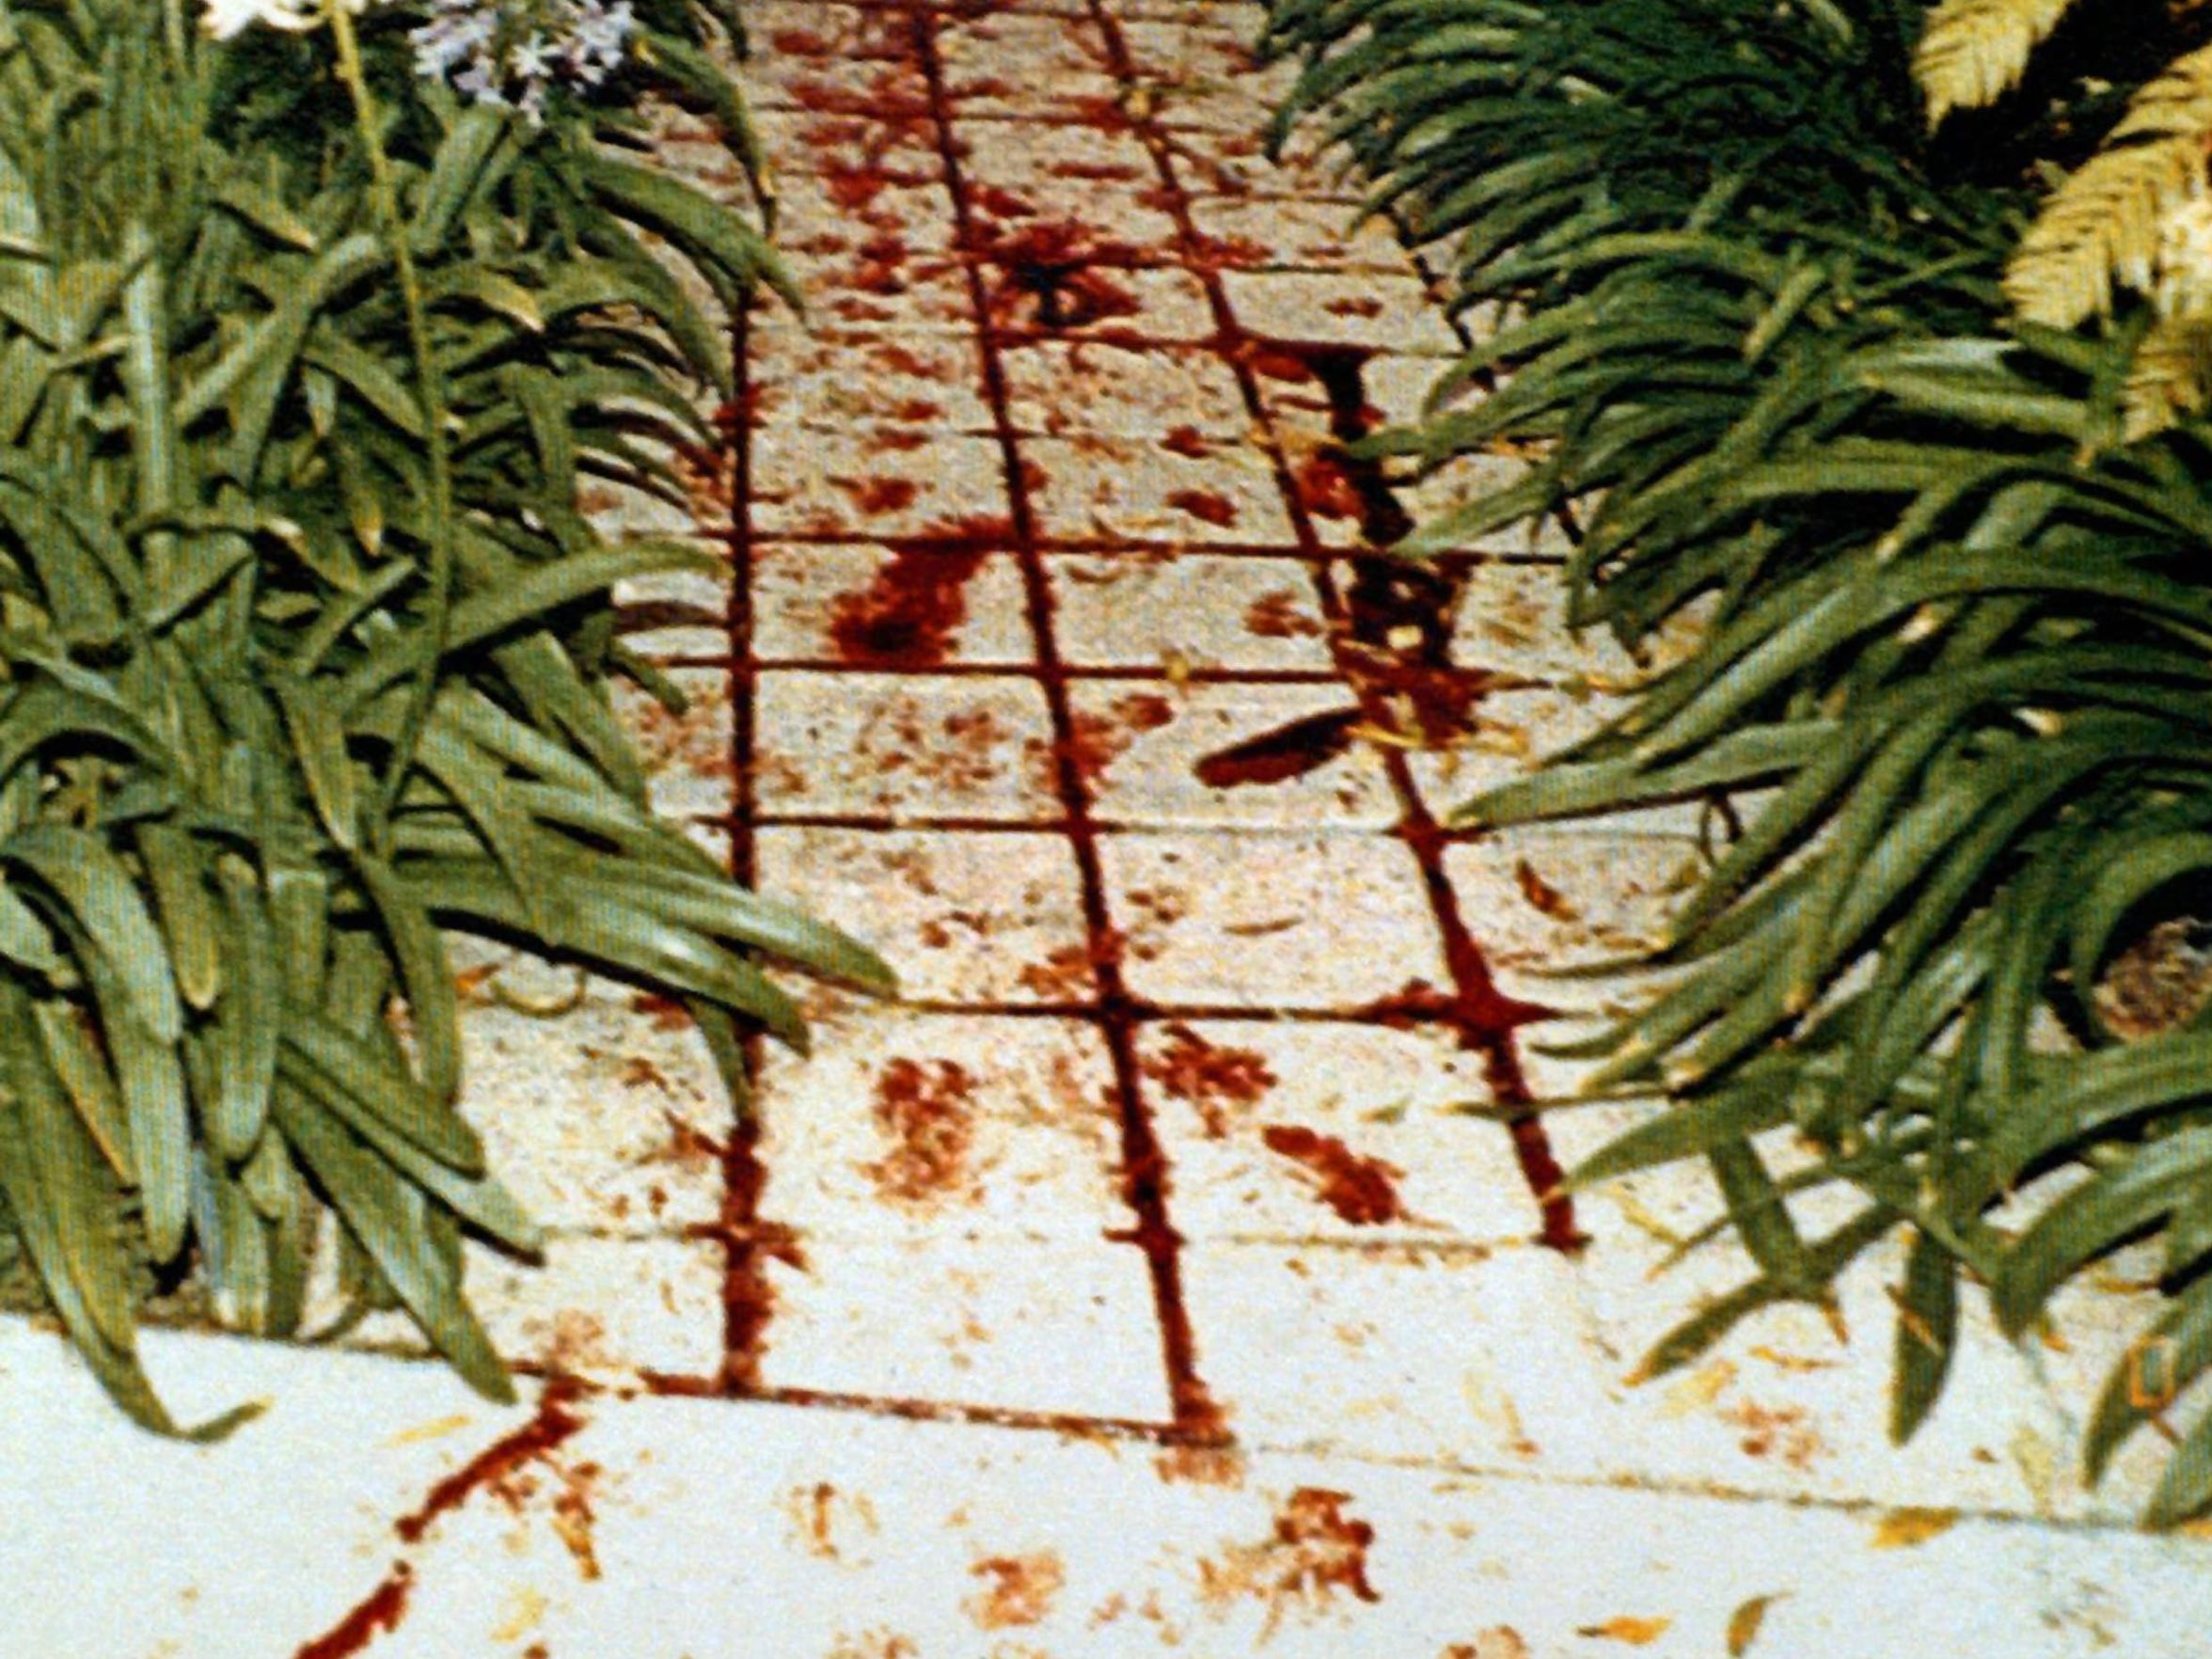 A photo from the Los Angeles Police Department shows blood and footprints found at the scene of Nicole Brown Simpson and Ronald Goldman's murder.